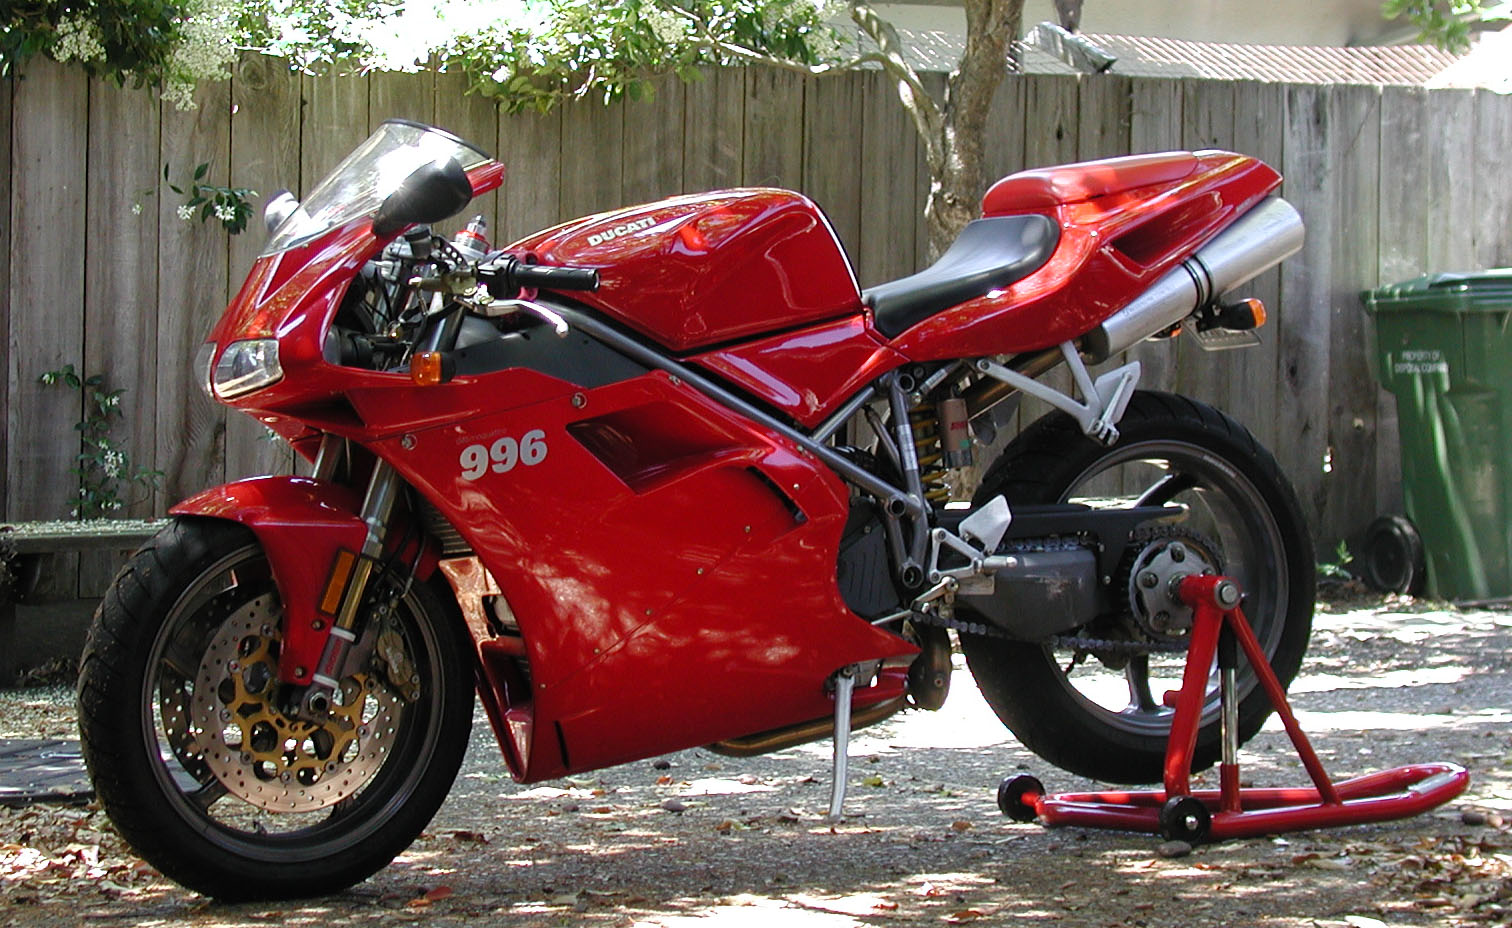 Ducati 996 2000 wallpapers #11237